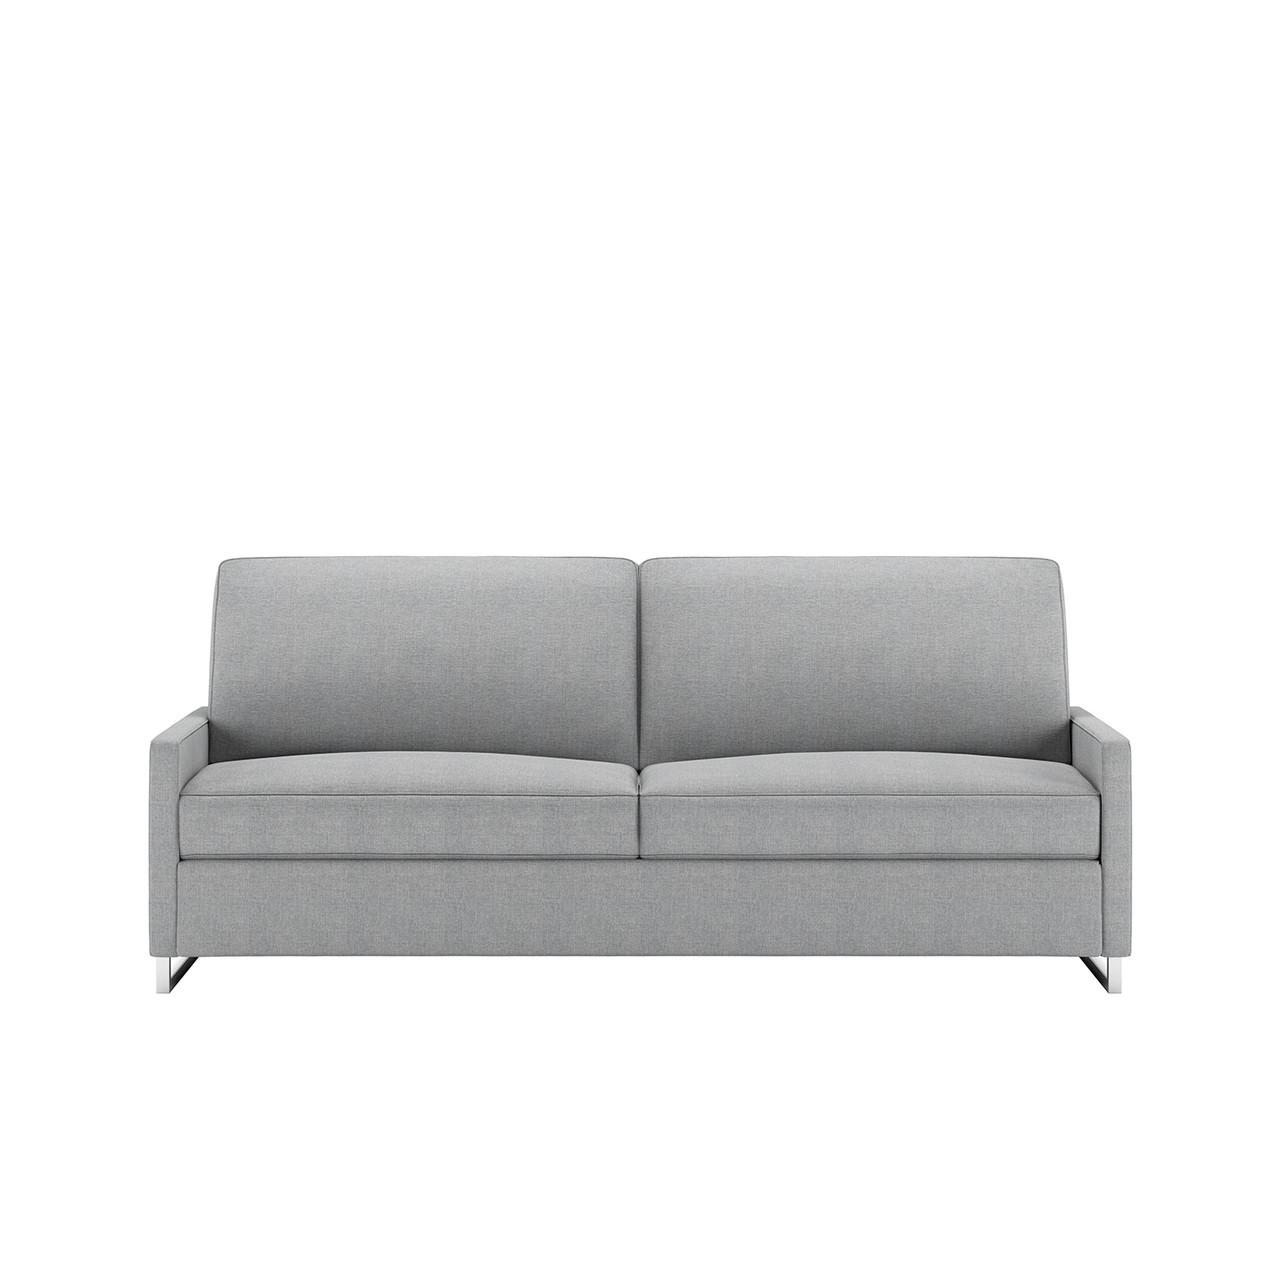 Queen Comfort Sleeper® in Pax Pewter